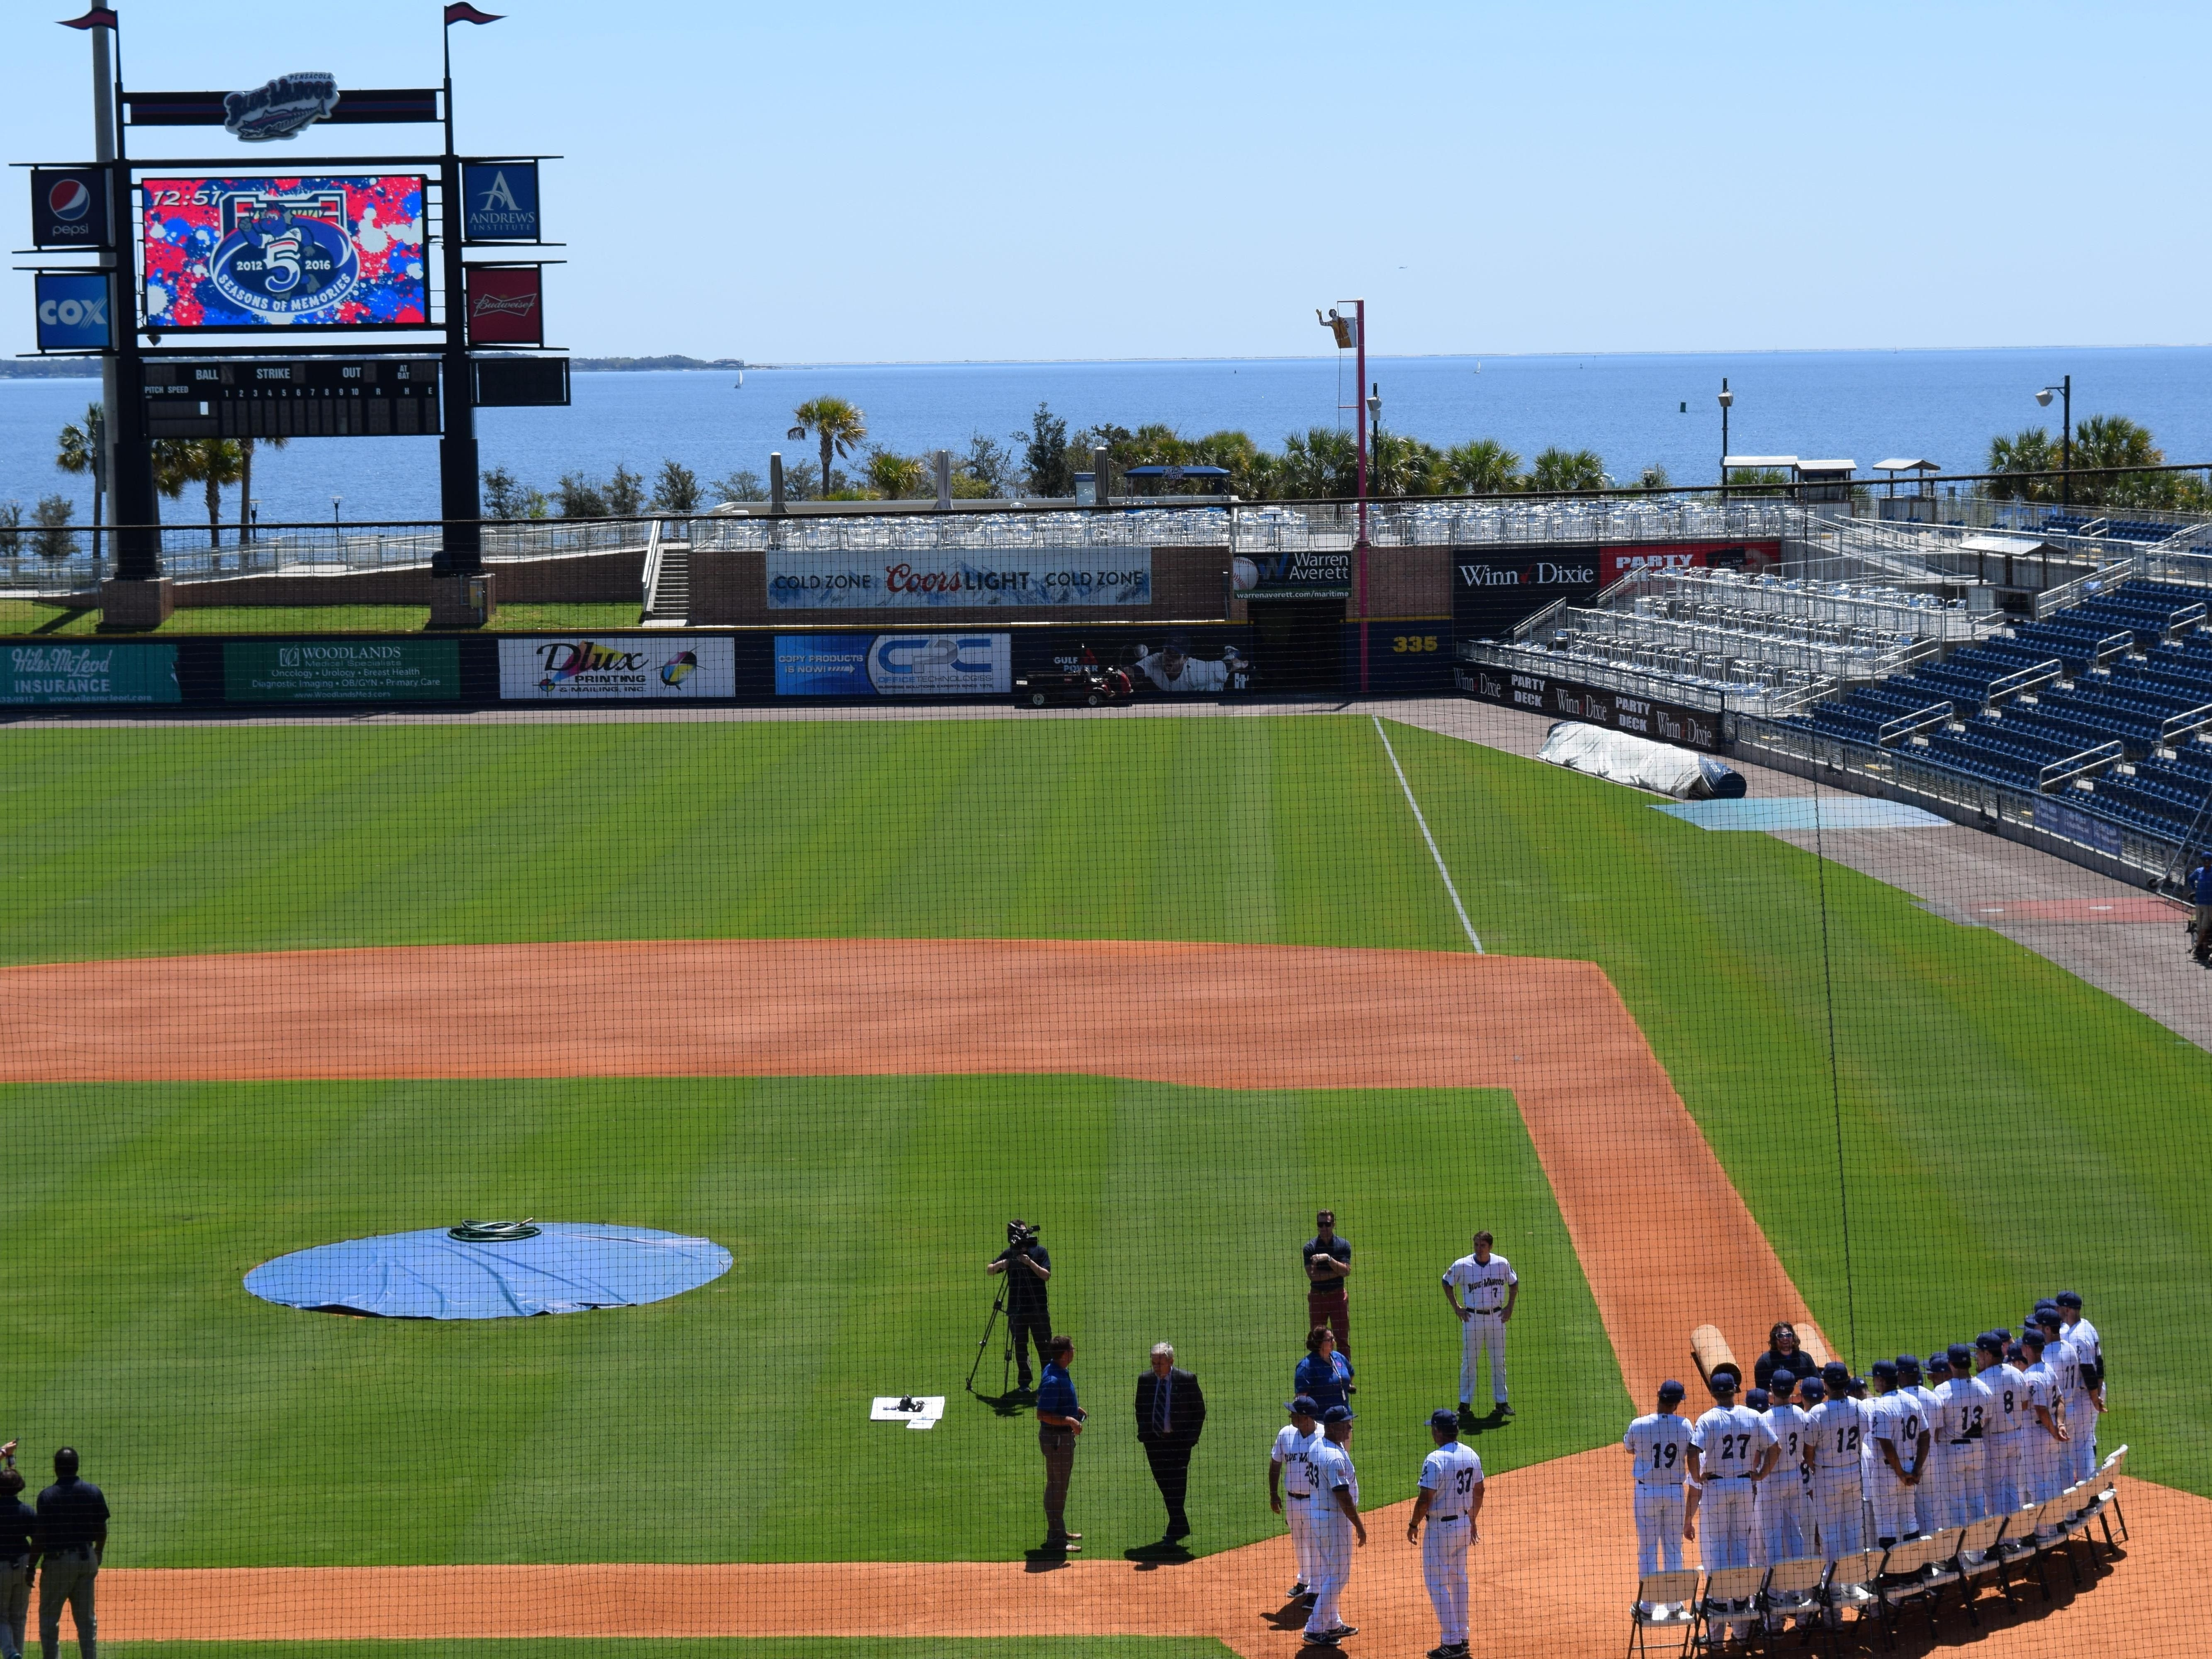 Amid spectacular backdrop, the Blue Wahoos players gathered on field to tape a sponsor commericial for season, prior their first practice Tuesday at Blue Wahoos Stadium.